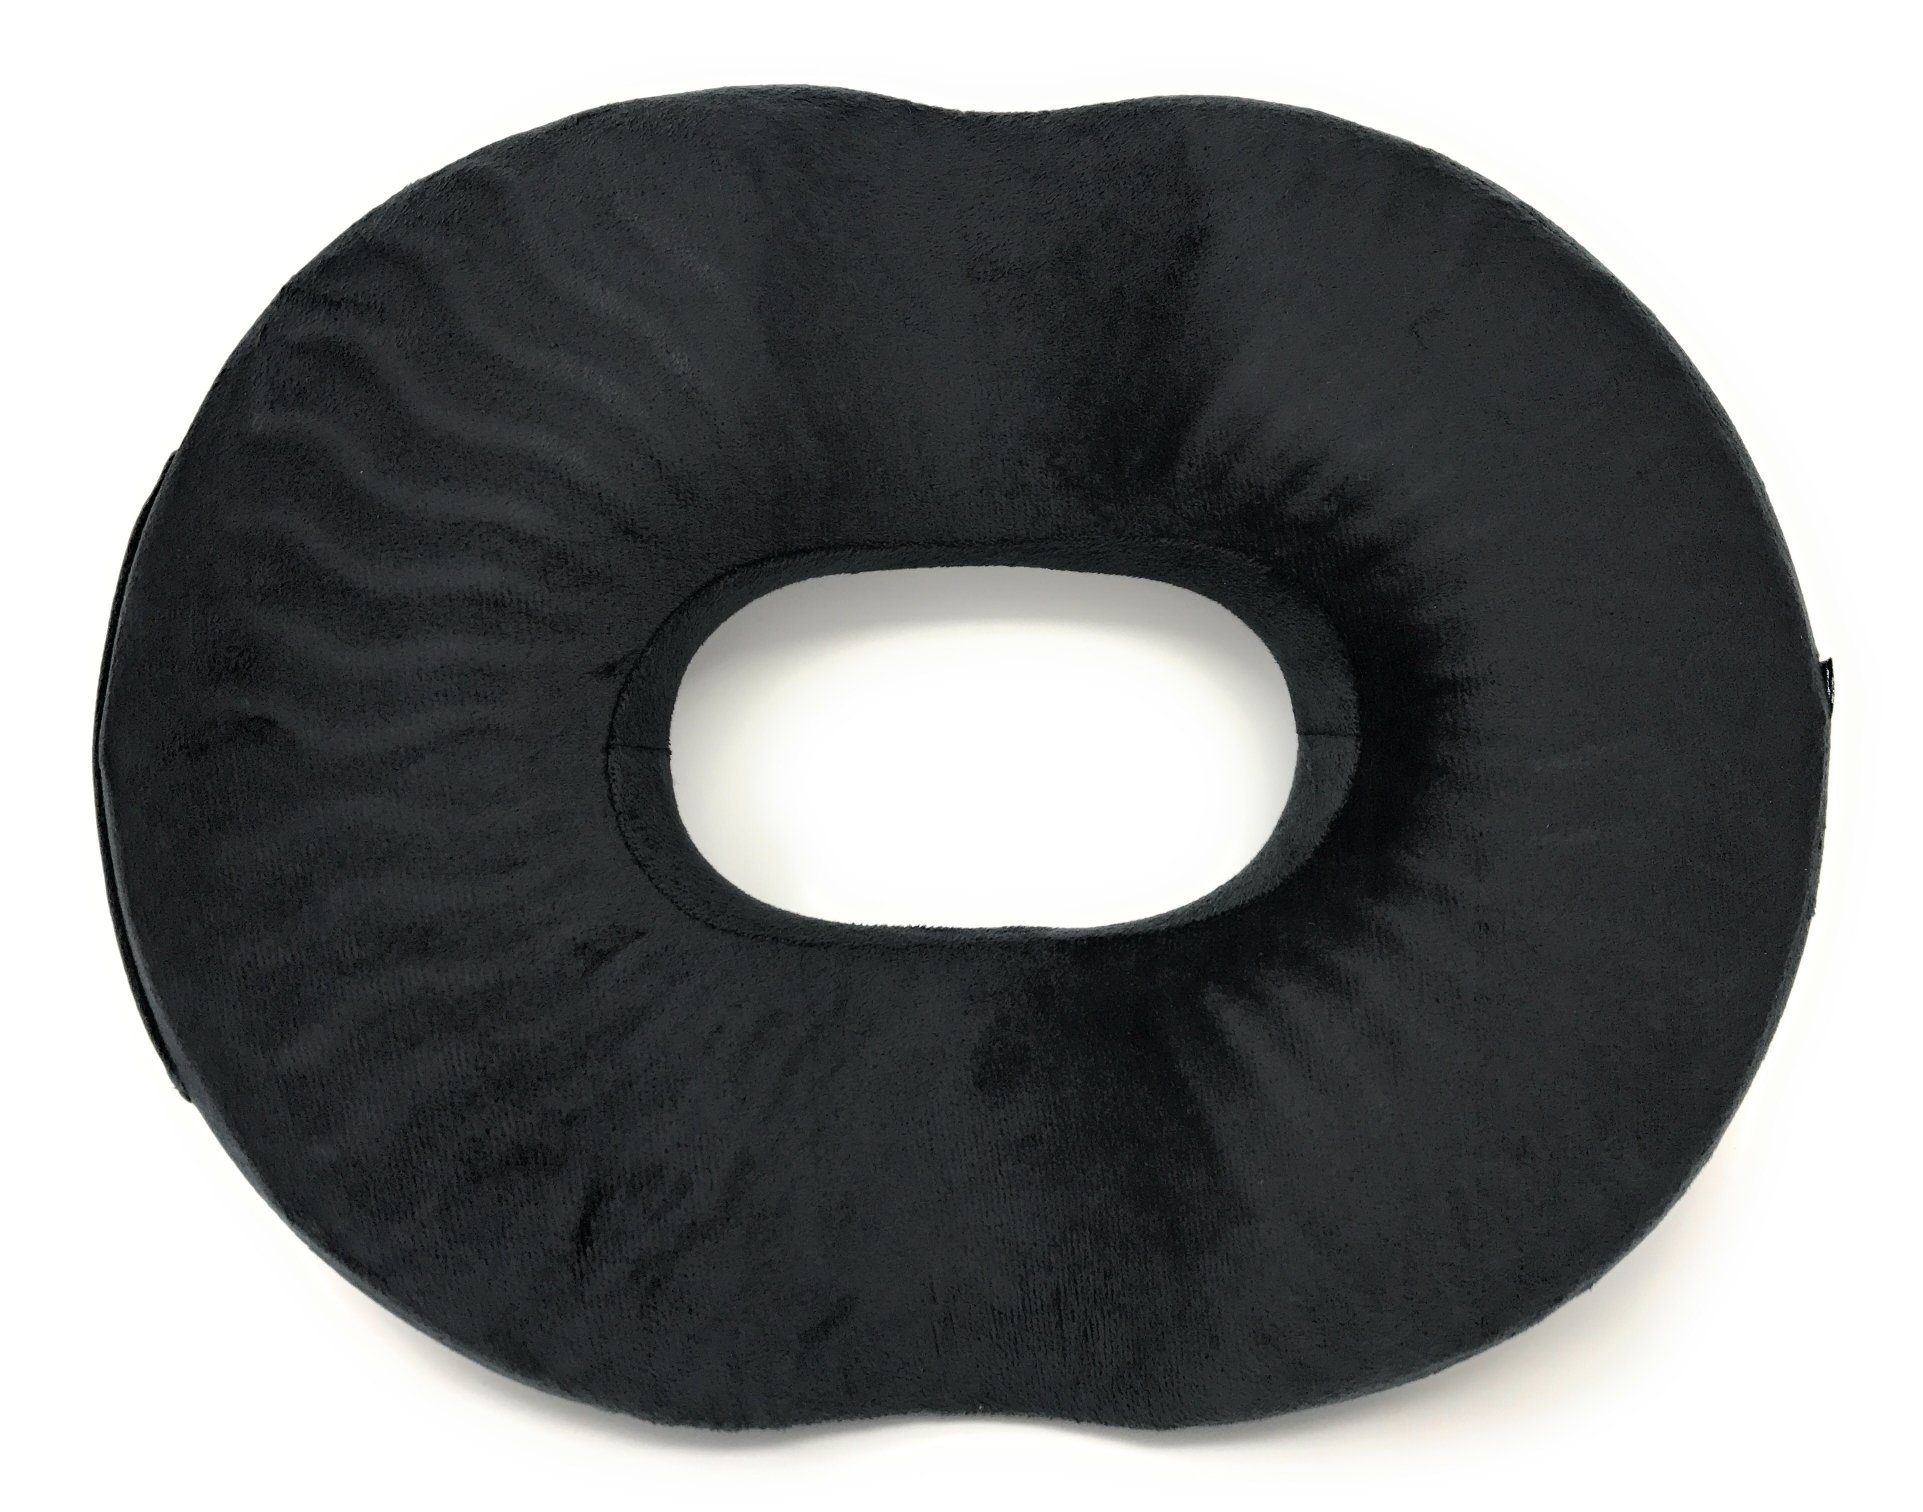 COZMAX - Donut Seat Cushion with Cooling Gel Comfort Pillow for Hemorrhoids, Prostate, Pregnancy, Post Natal Pain Relief Treatment, Surgery (Black) (Sway)